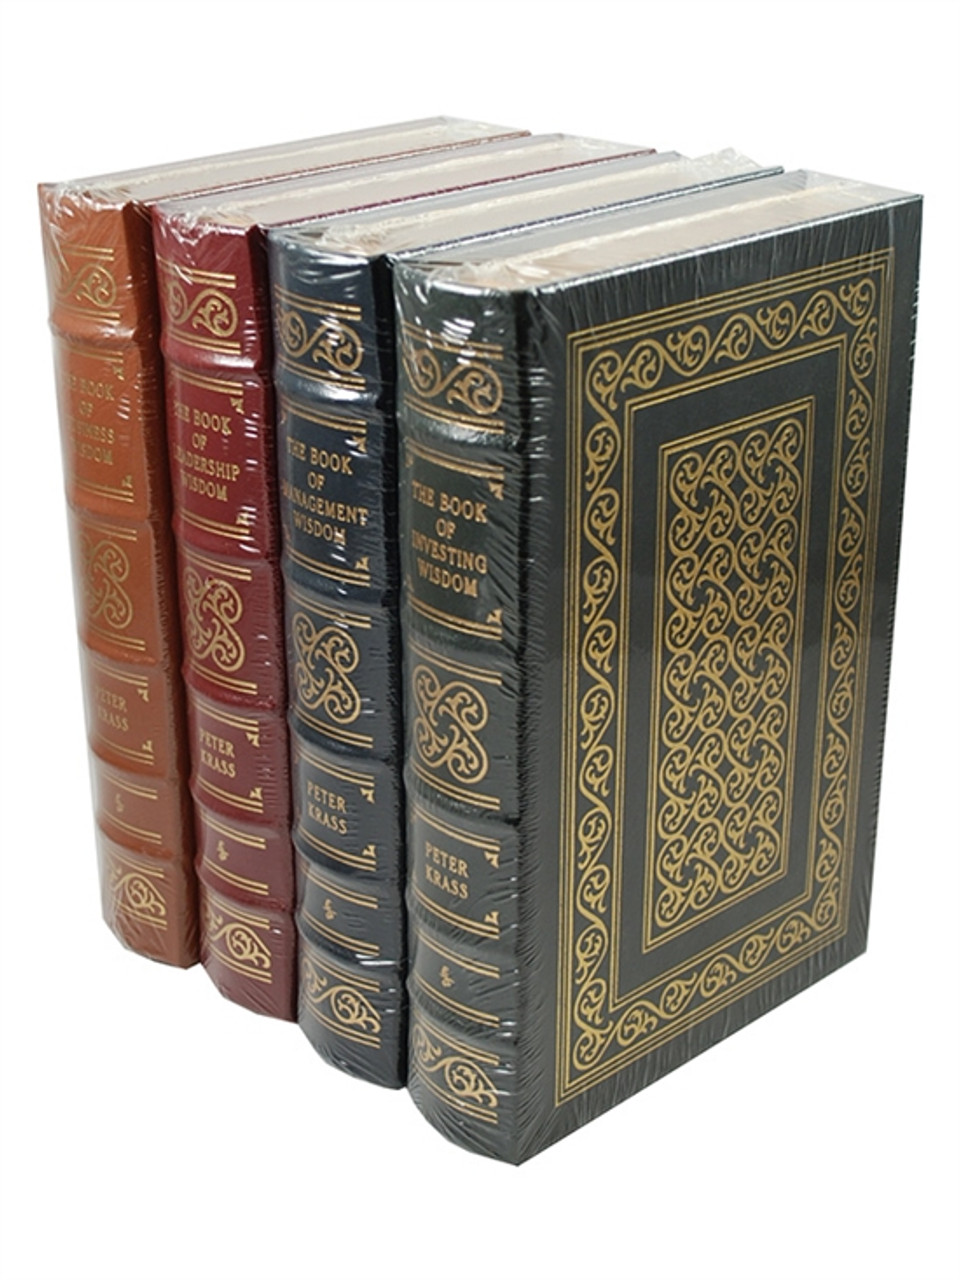 """Easton Press """"The Books of Wisdom"""" Peter Krass, 4 Leather Bound Volumes - Sealed"""